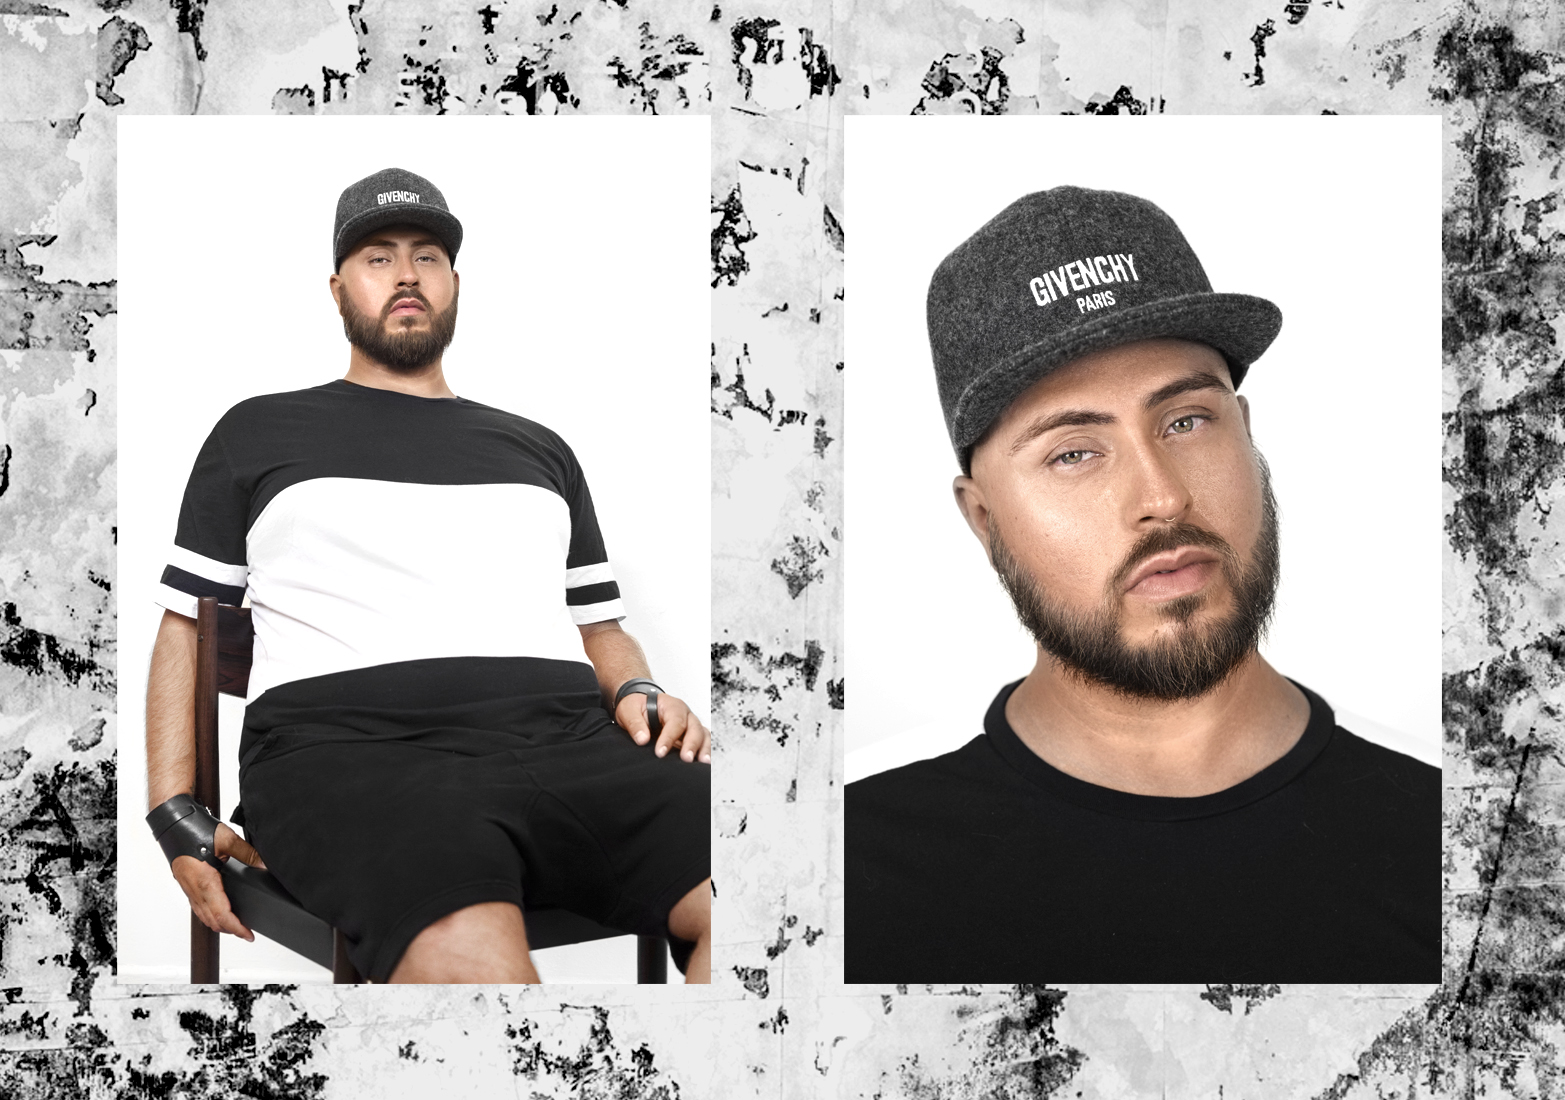 Football jersey by Zanerobe, Wrist cuffs are Margiela for H&M,Baseball cap by Givenchy.